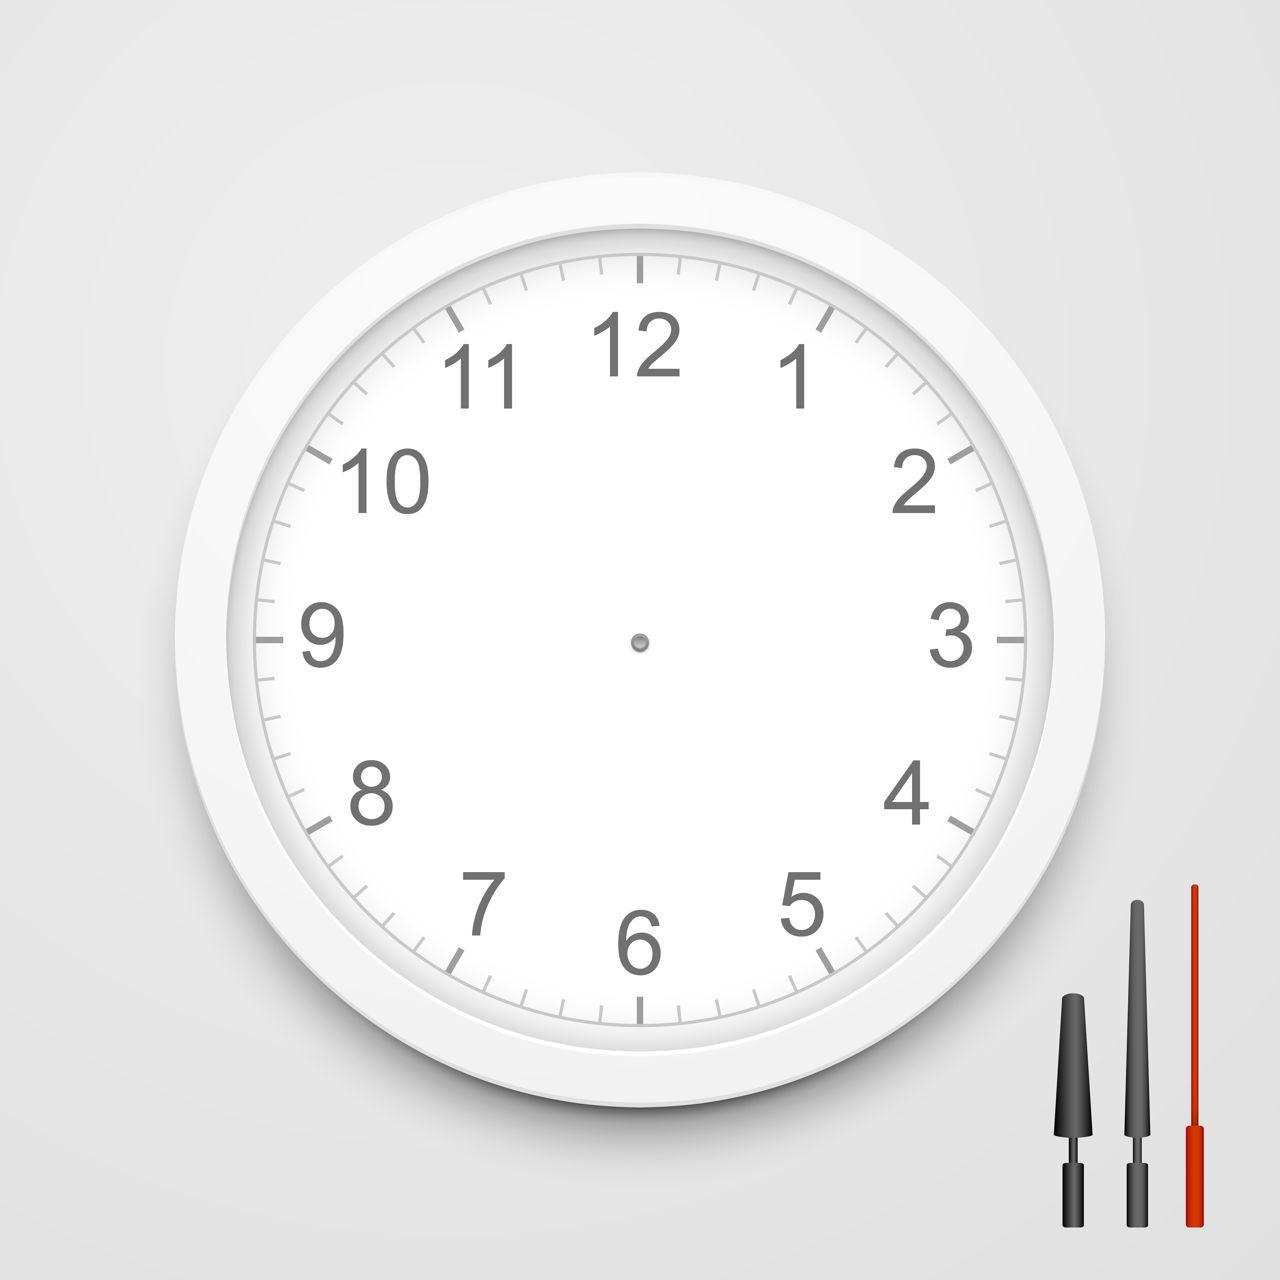 001 Formidable Customizable Clock Face Template Photo Full